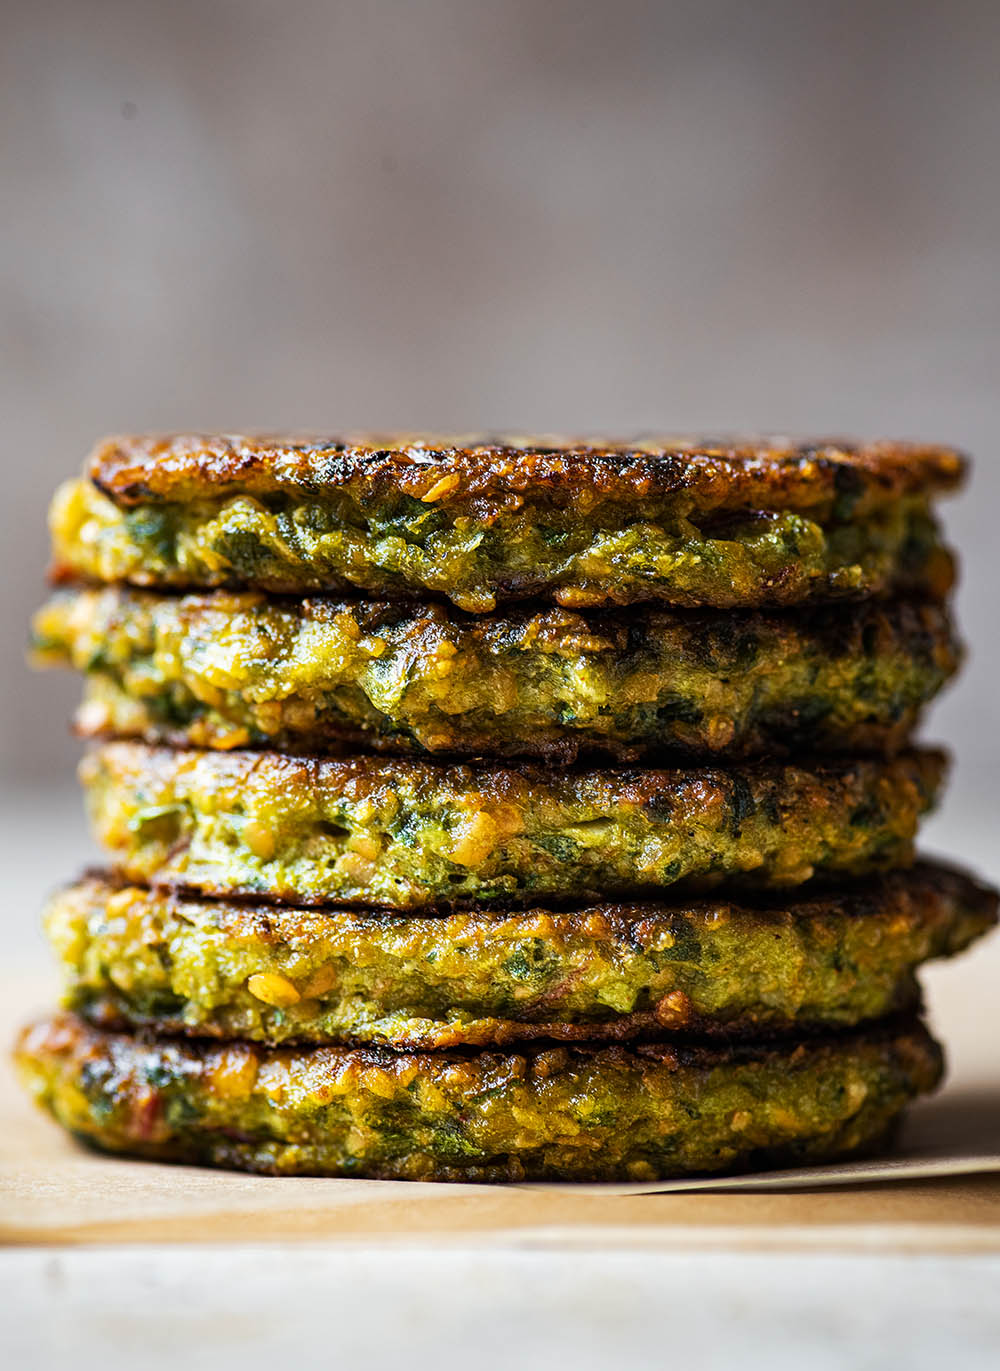 Close up of a stack of lentil patties.